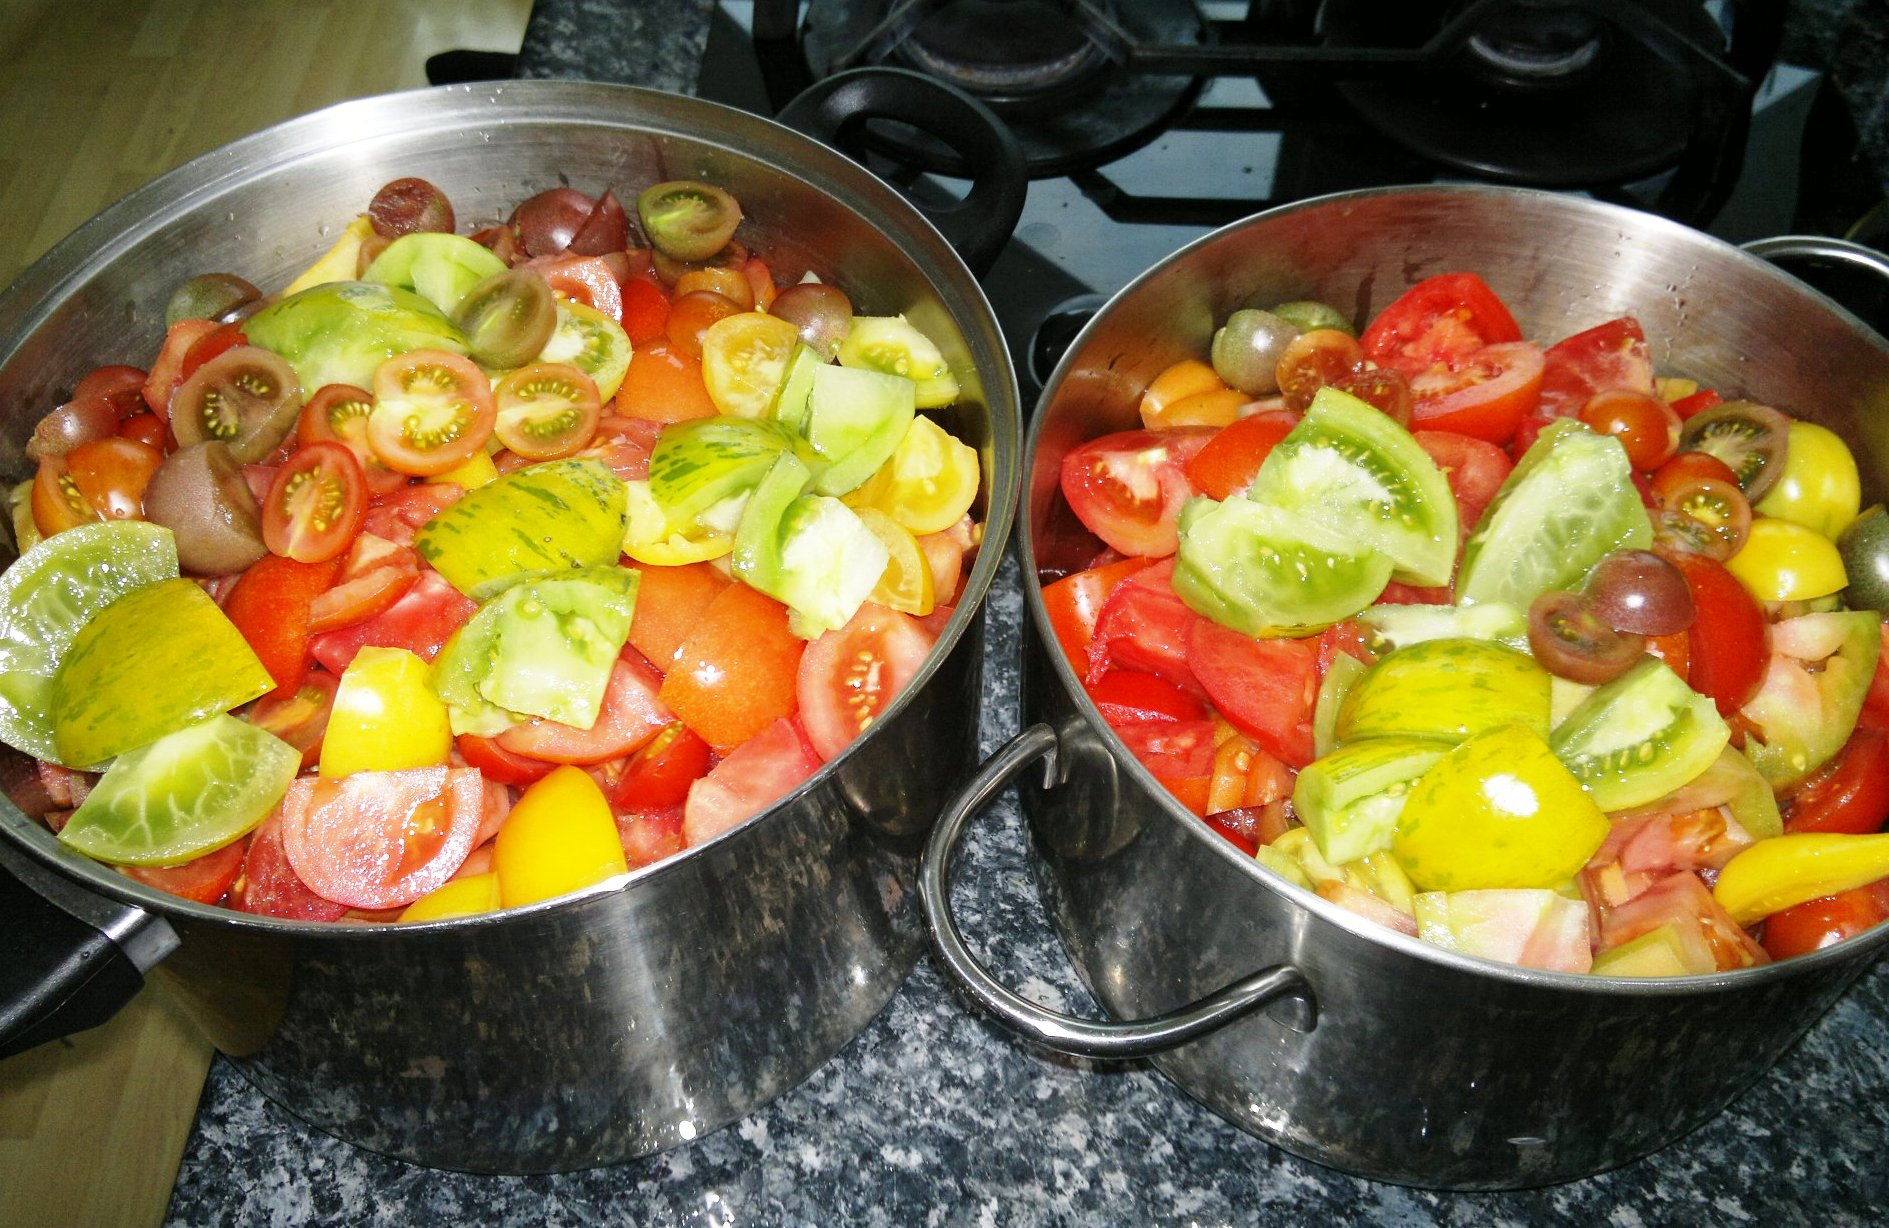 The final production of tomato sauce for winter use